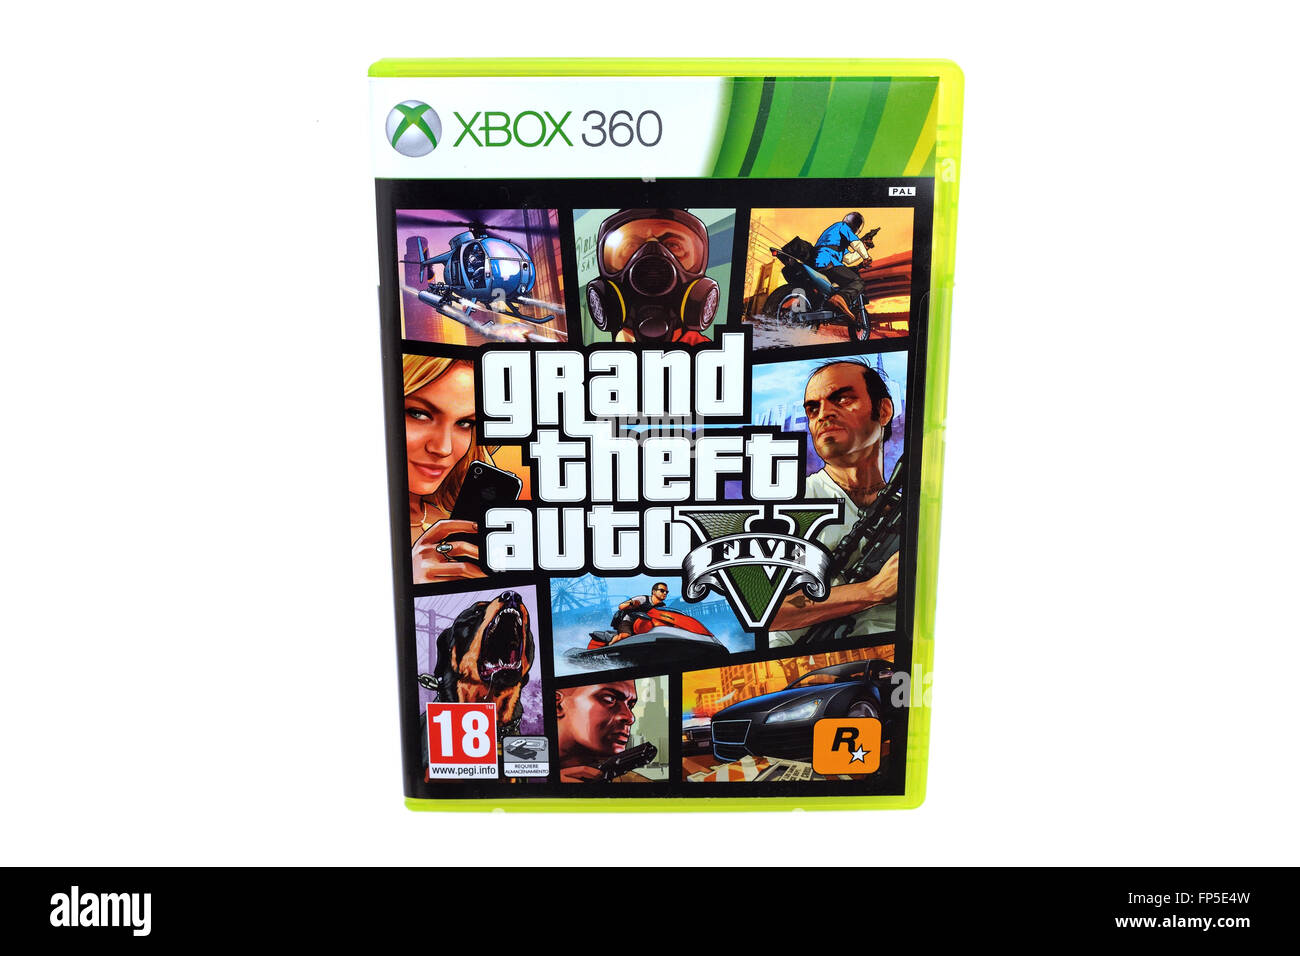 BARCELONA, SPAIN - DEC 27, 2014: The famous video game GTA V, also known as Grand Theft Auto, released by Rockstar, - Stock Image